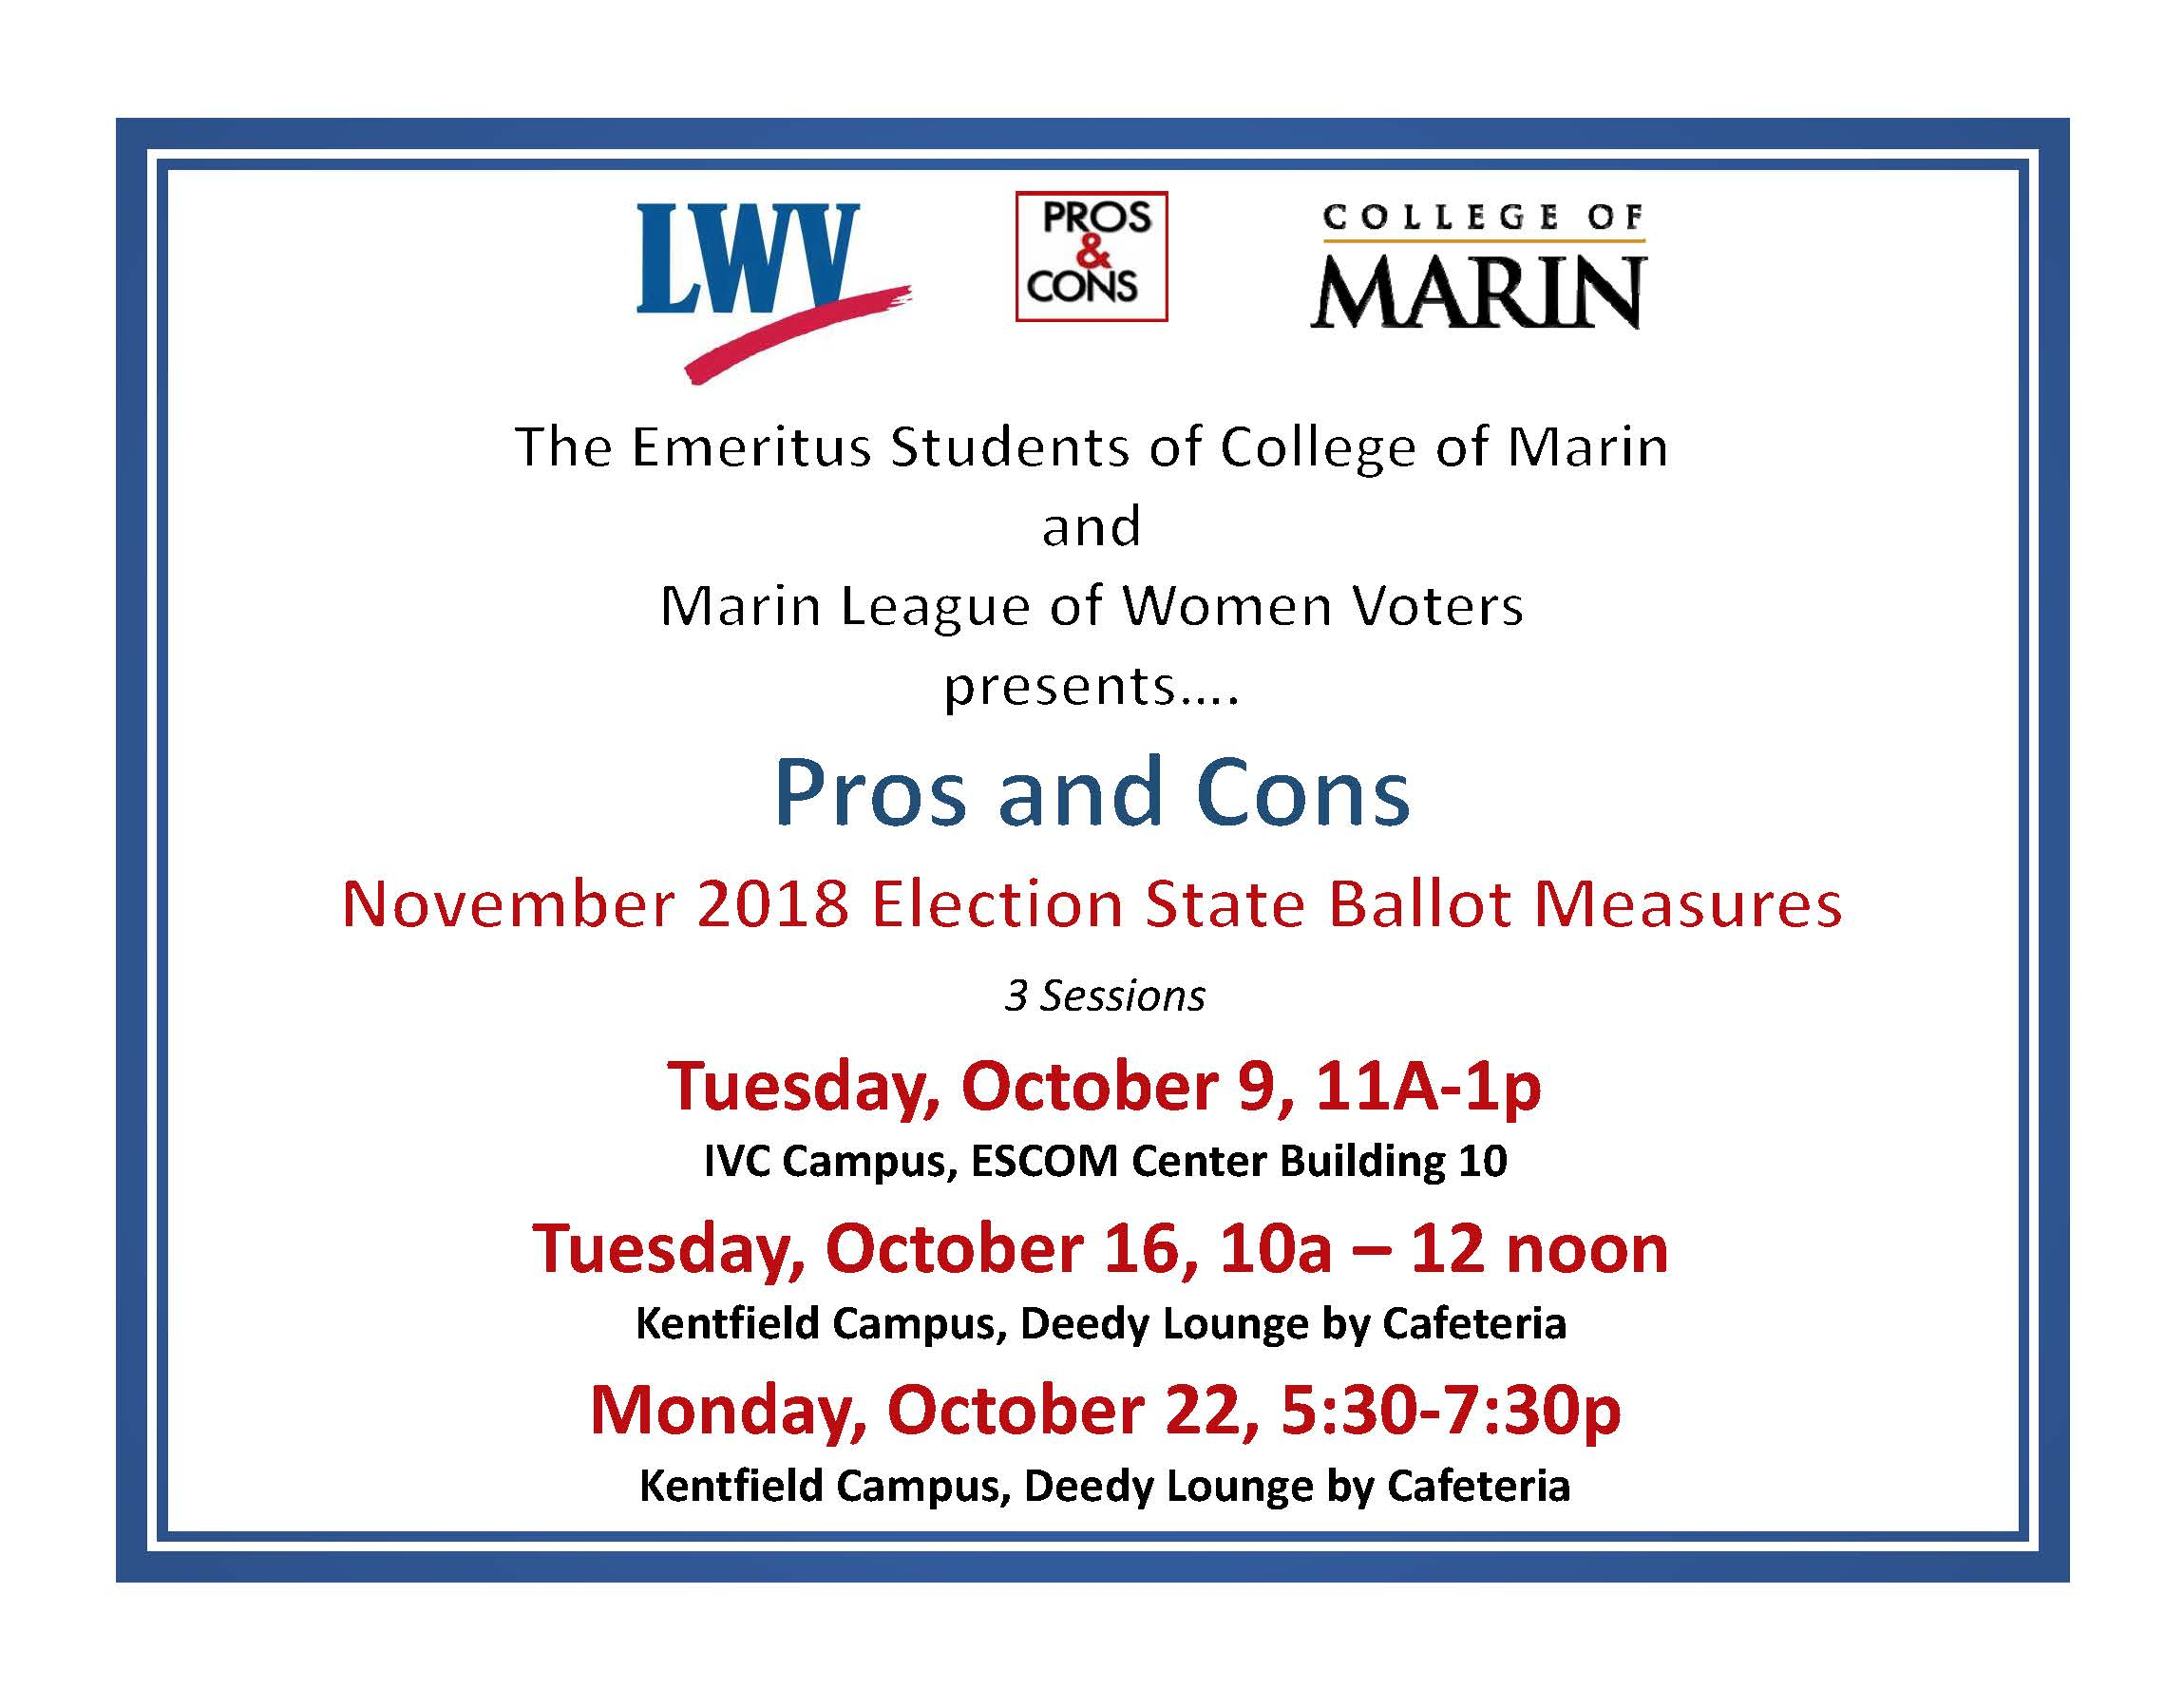 181016-REVISED COM Pros and Cons presentations-3events.jpg